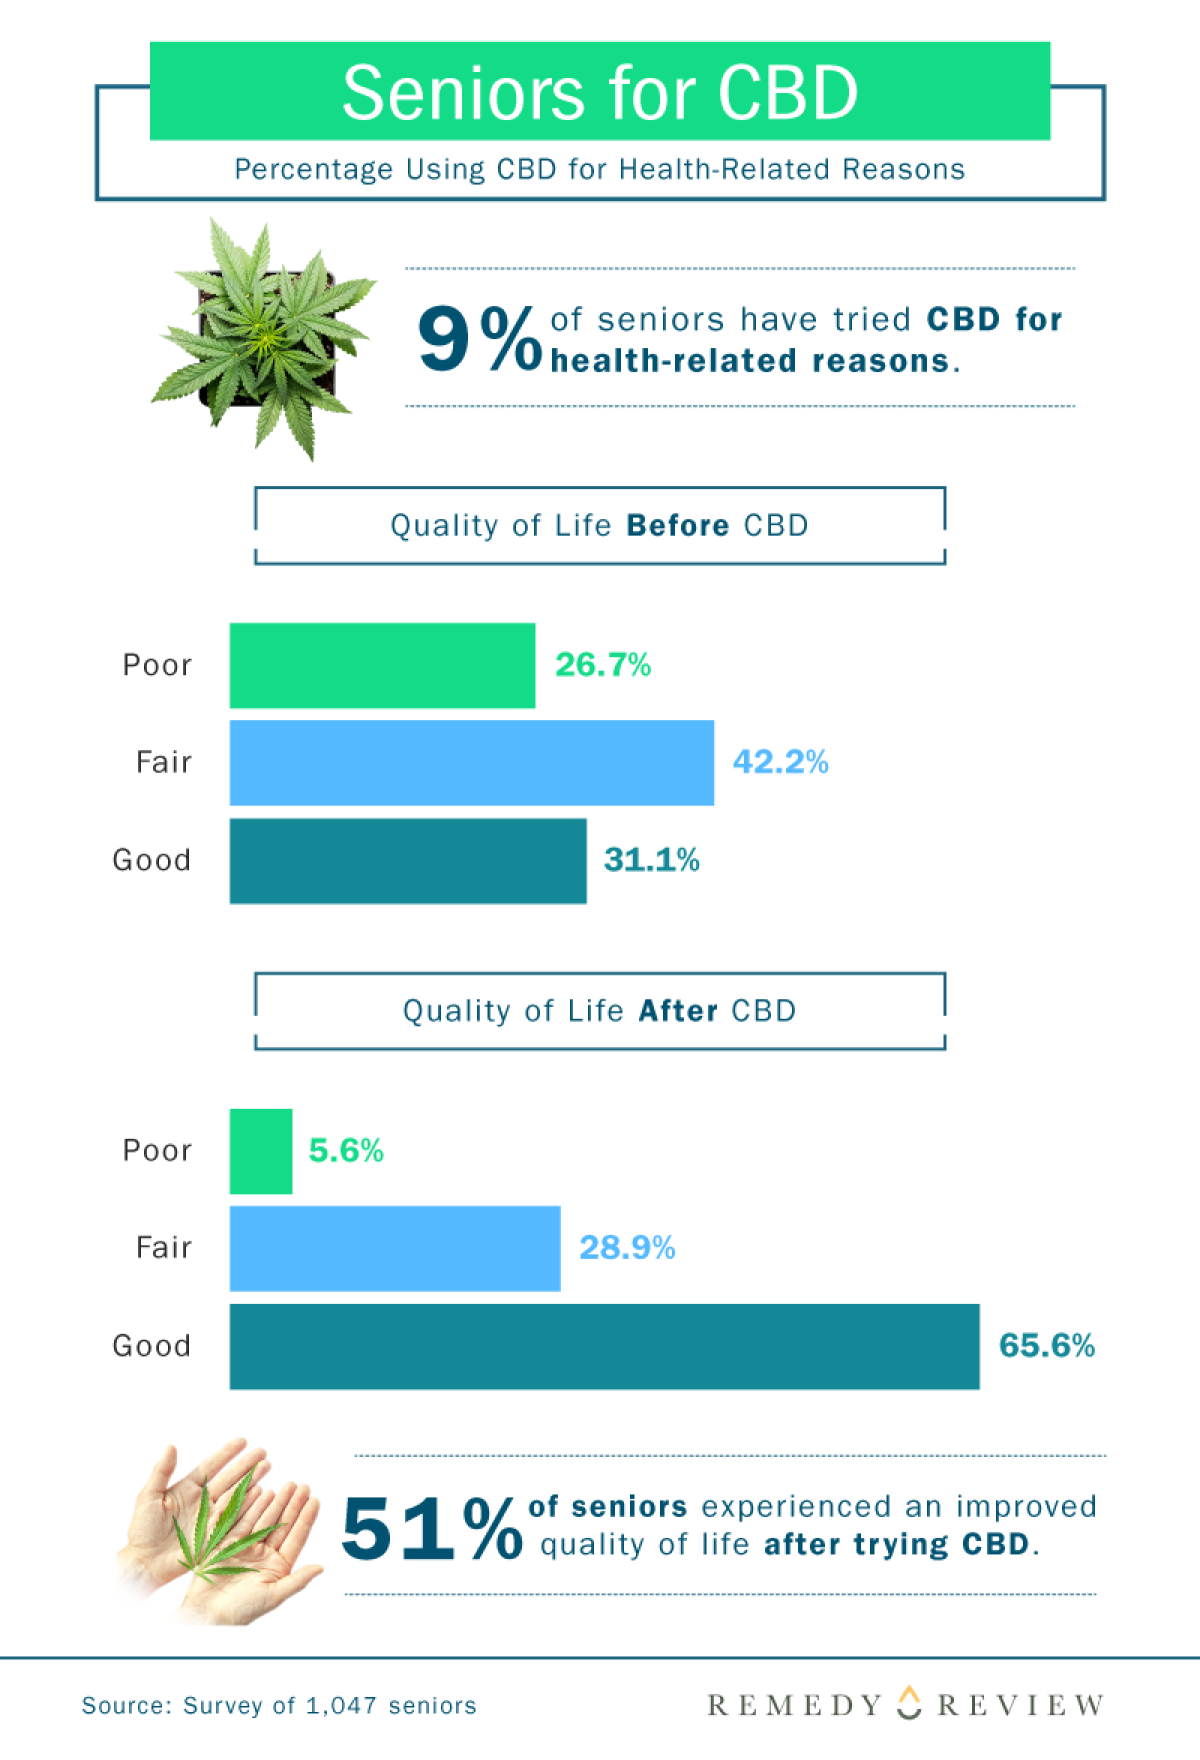 Tables and Graphs showing CBD use among elderly seniors